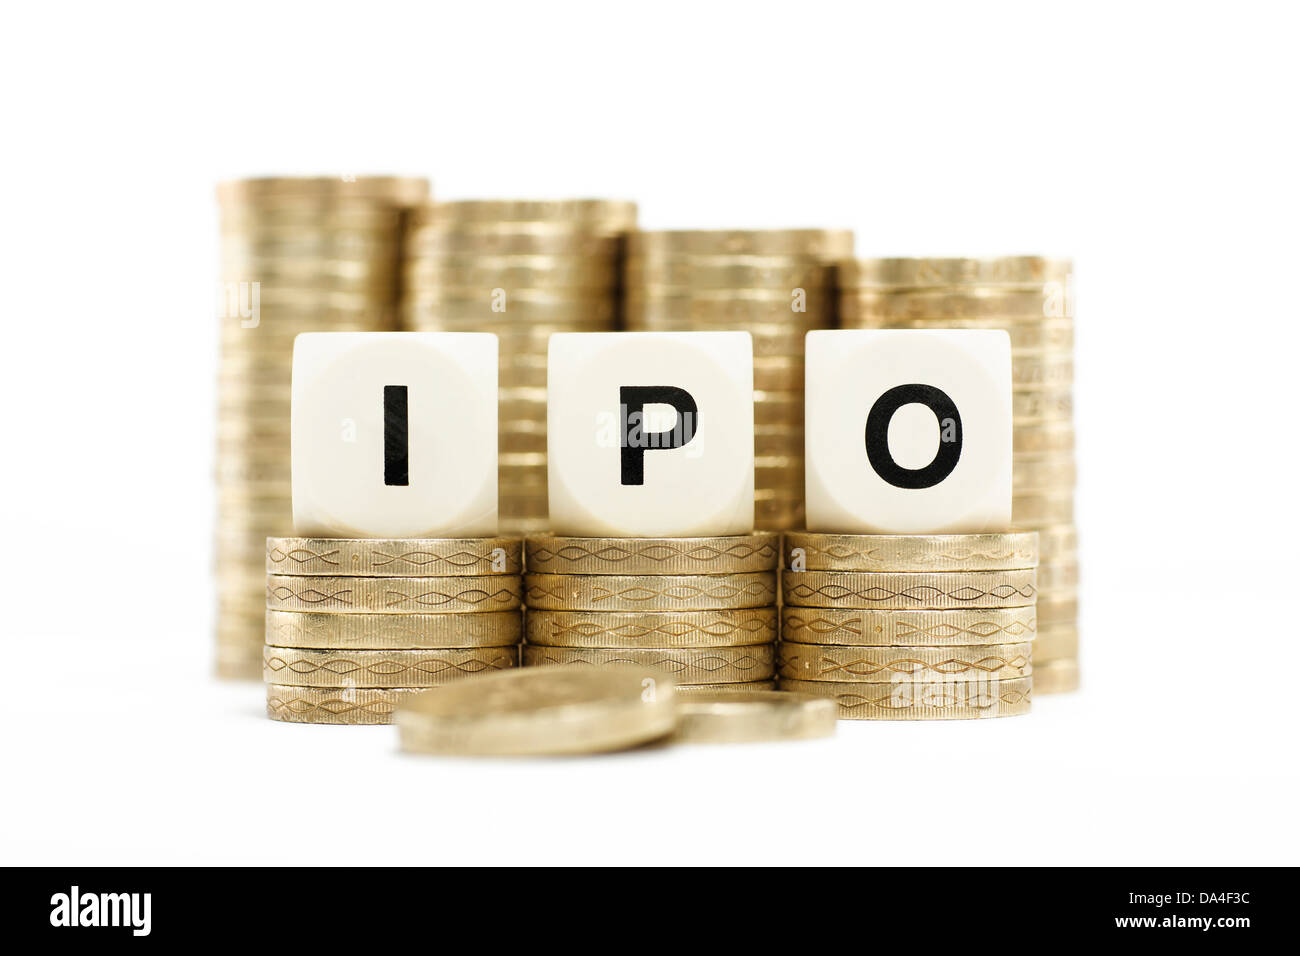 IPO (Initial Public Offering) on gold coins on white background - Stock Image